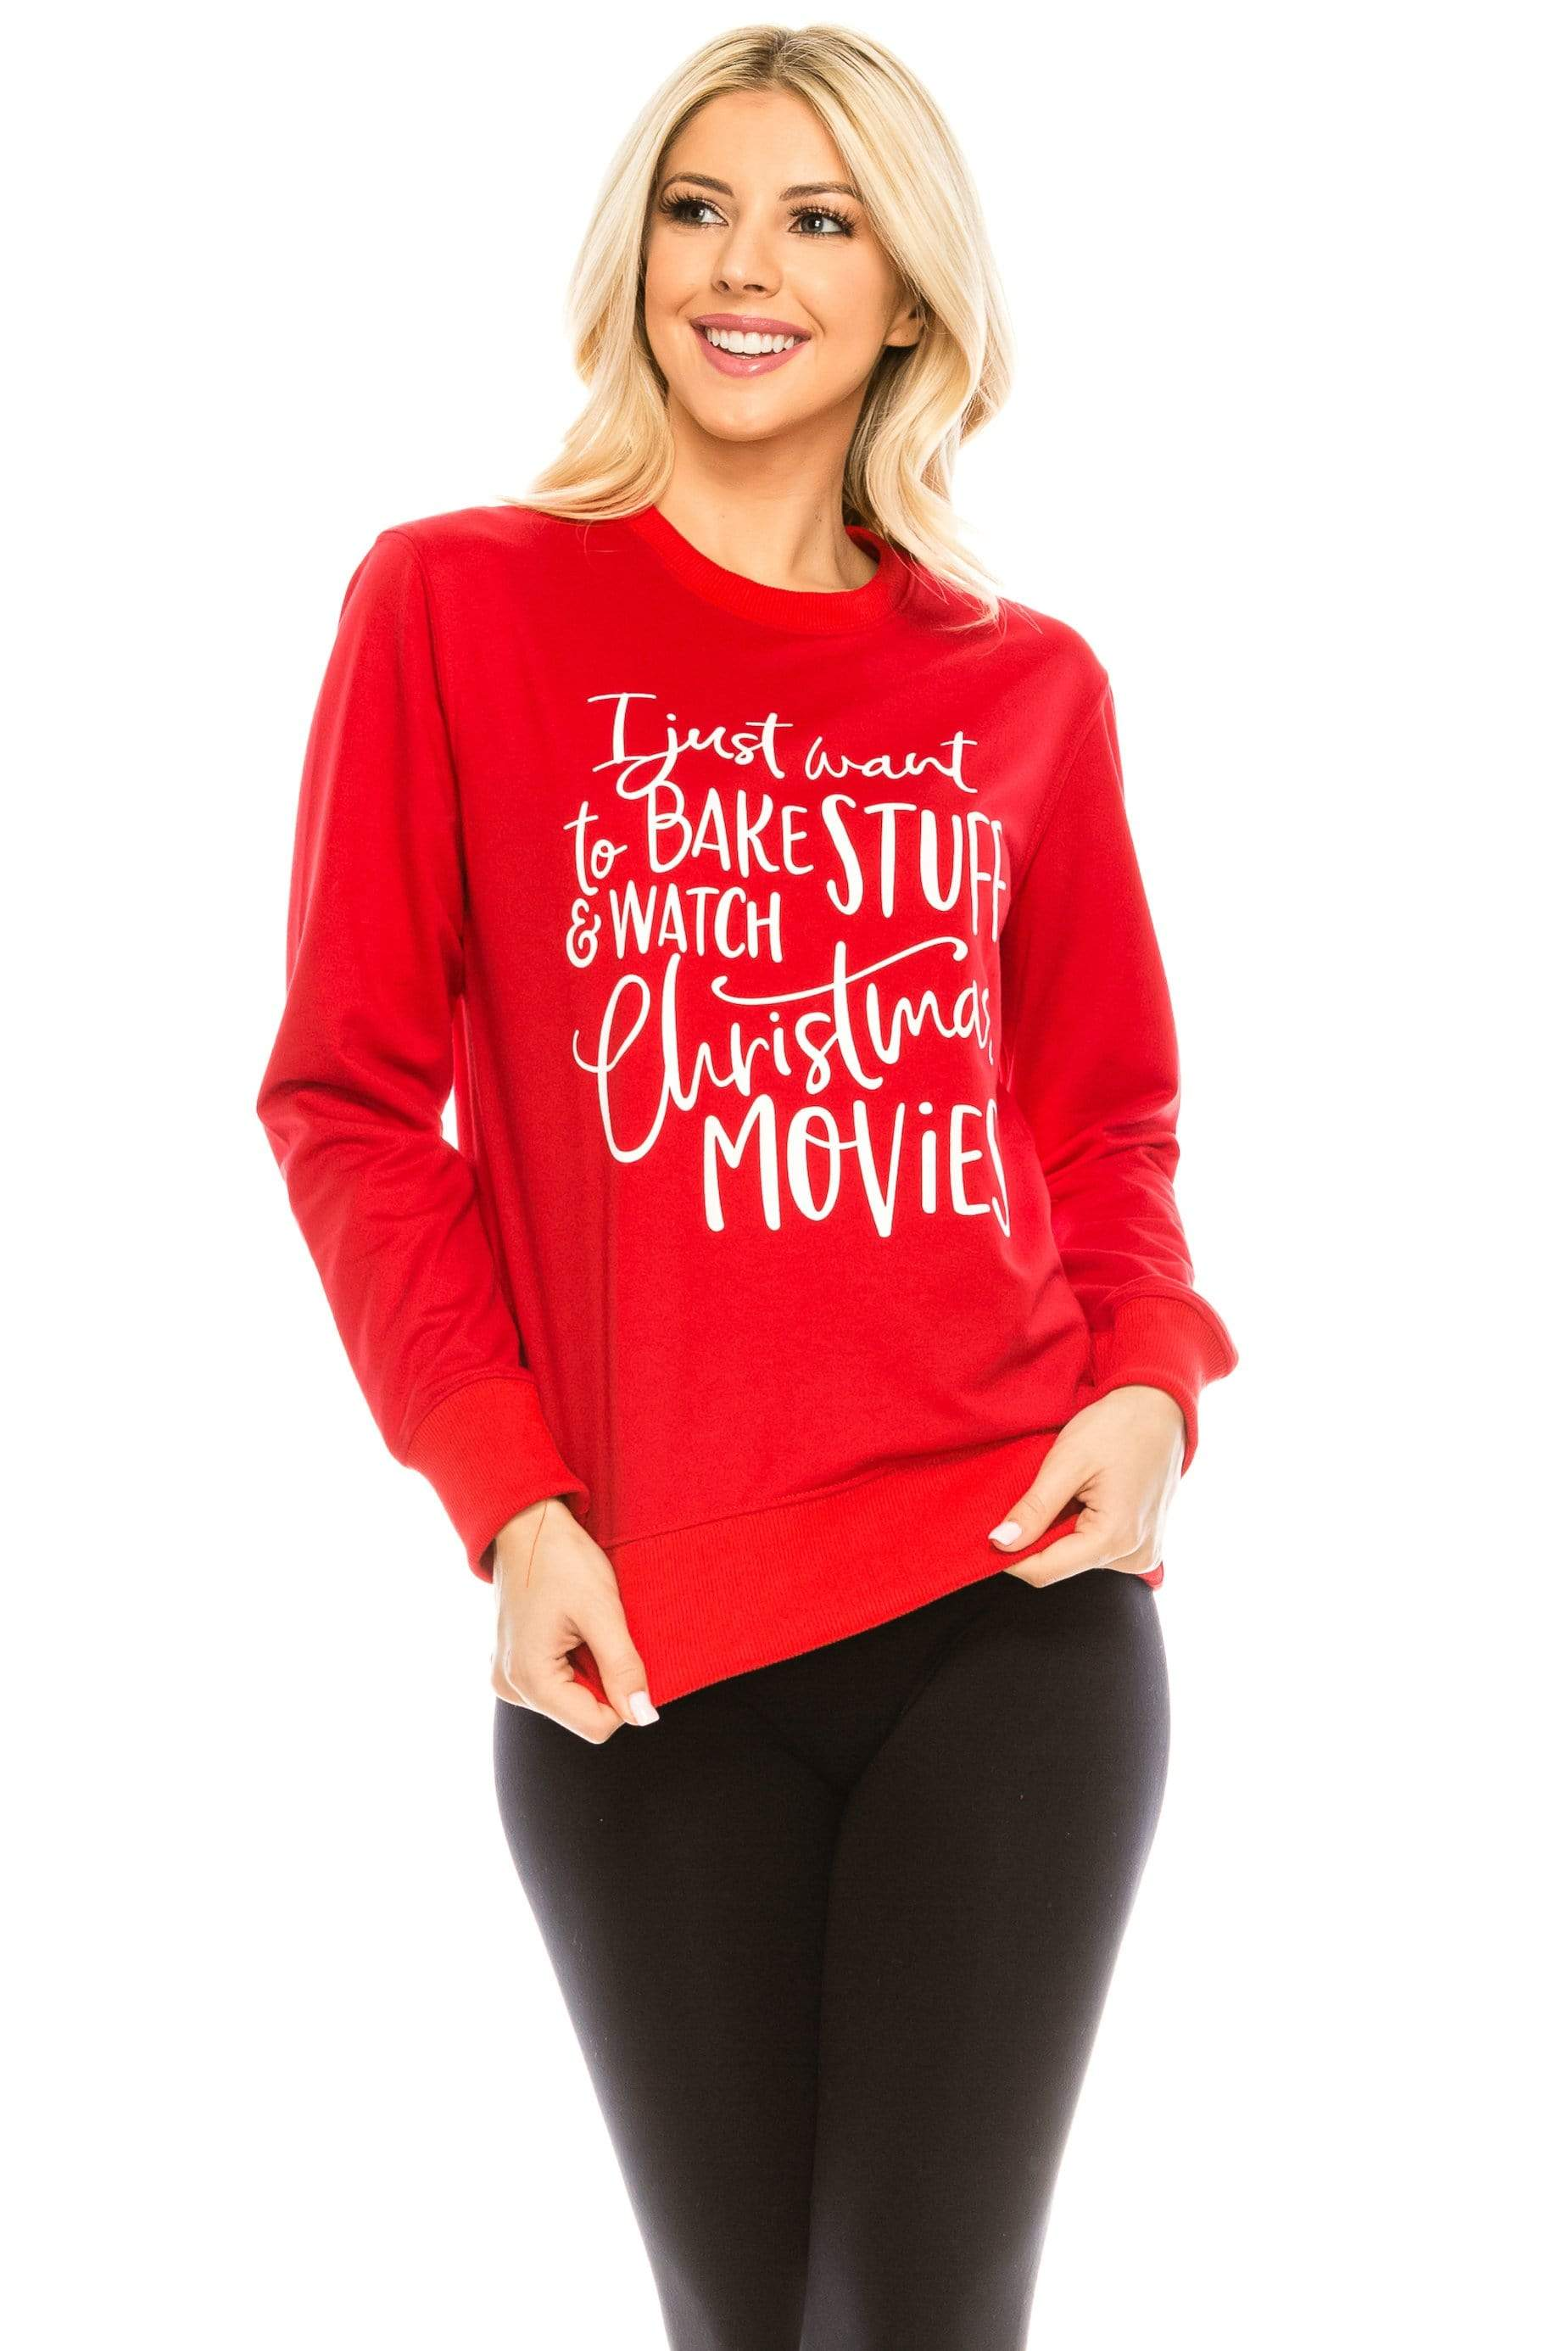 Haute Edition WOMEN'S TOP Holiday Christmas Baking Themed Sweatshirt with Bonus Oven Mitt and Potholder Gift Set